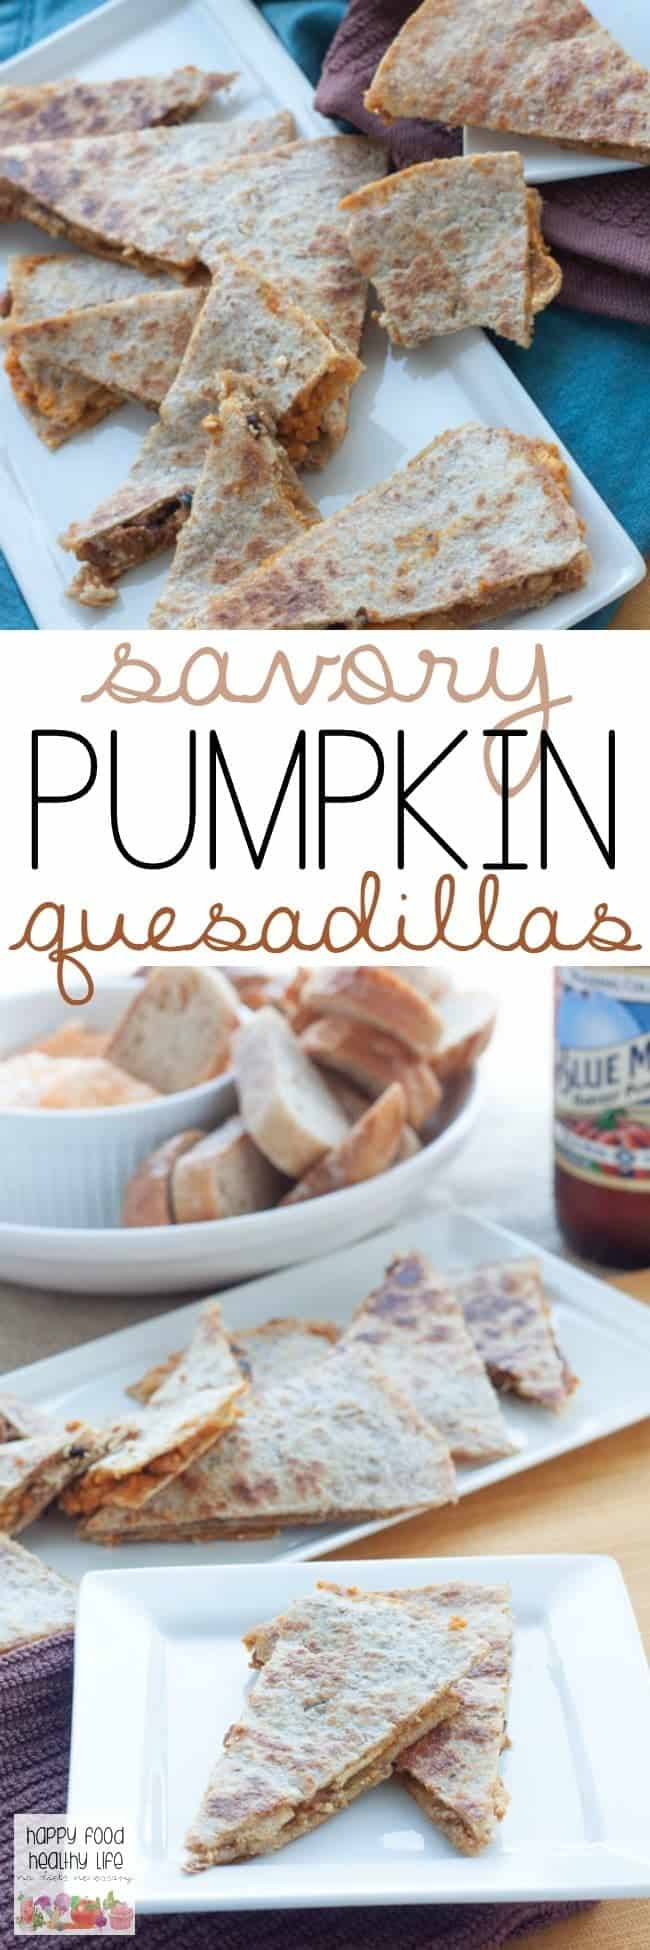 Savory Pumpkin Quesadillas - a perfect blend of savory and sweet. Great as an appetizer for Thanksgiving, football, or just a healthy afternoon snack.